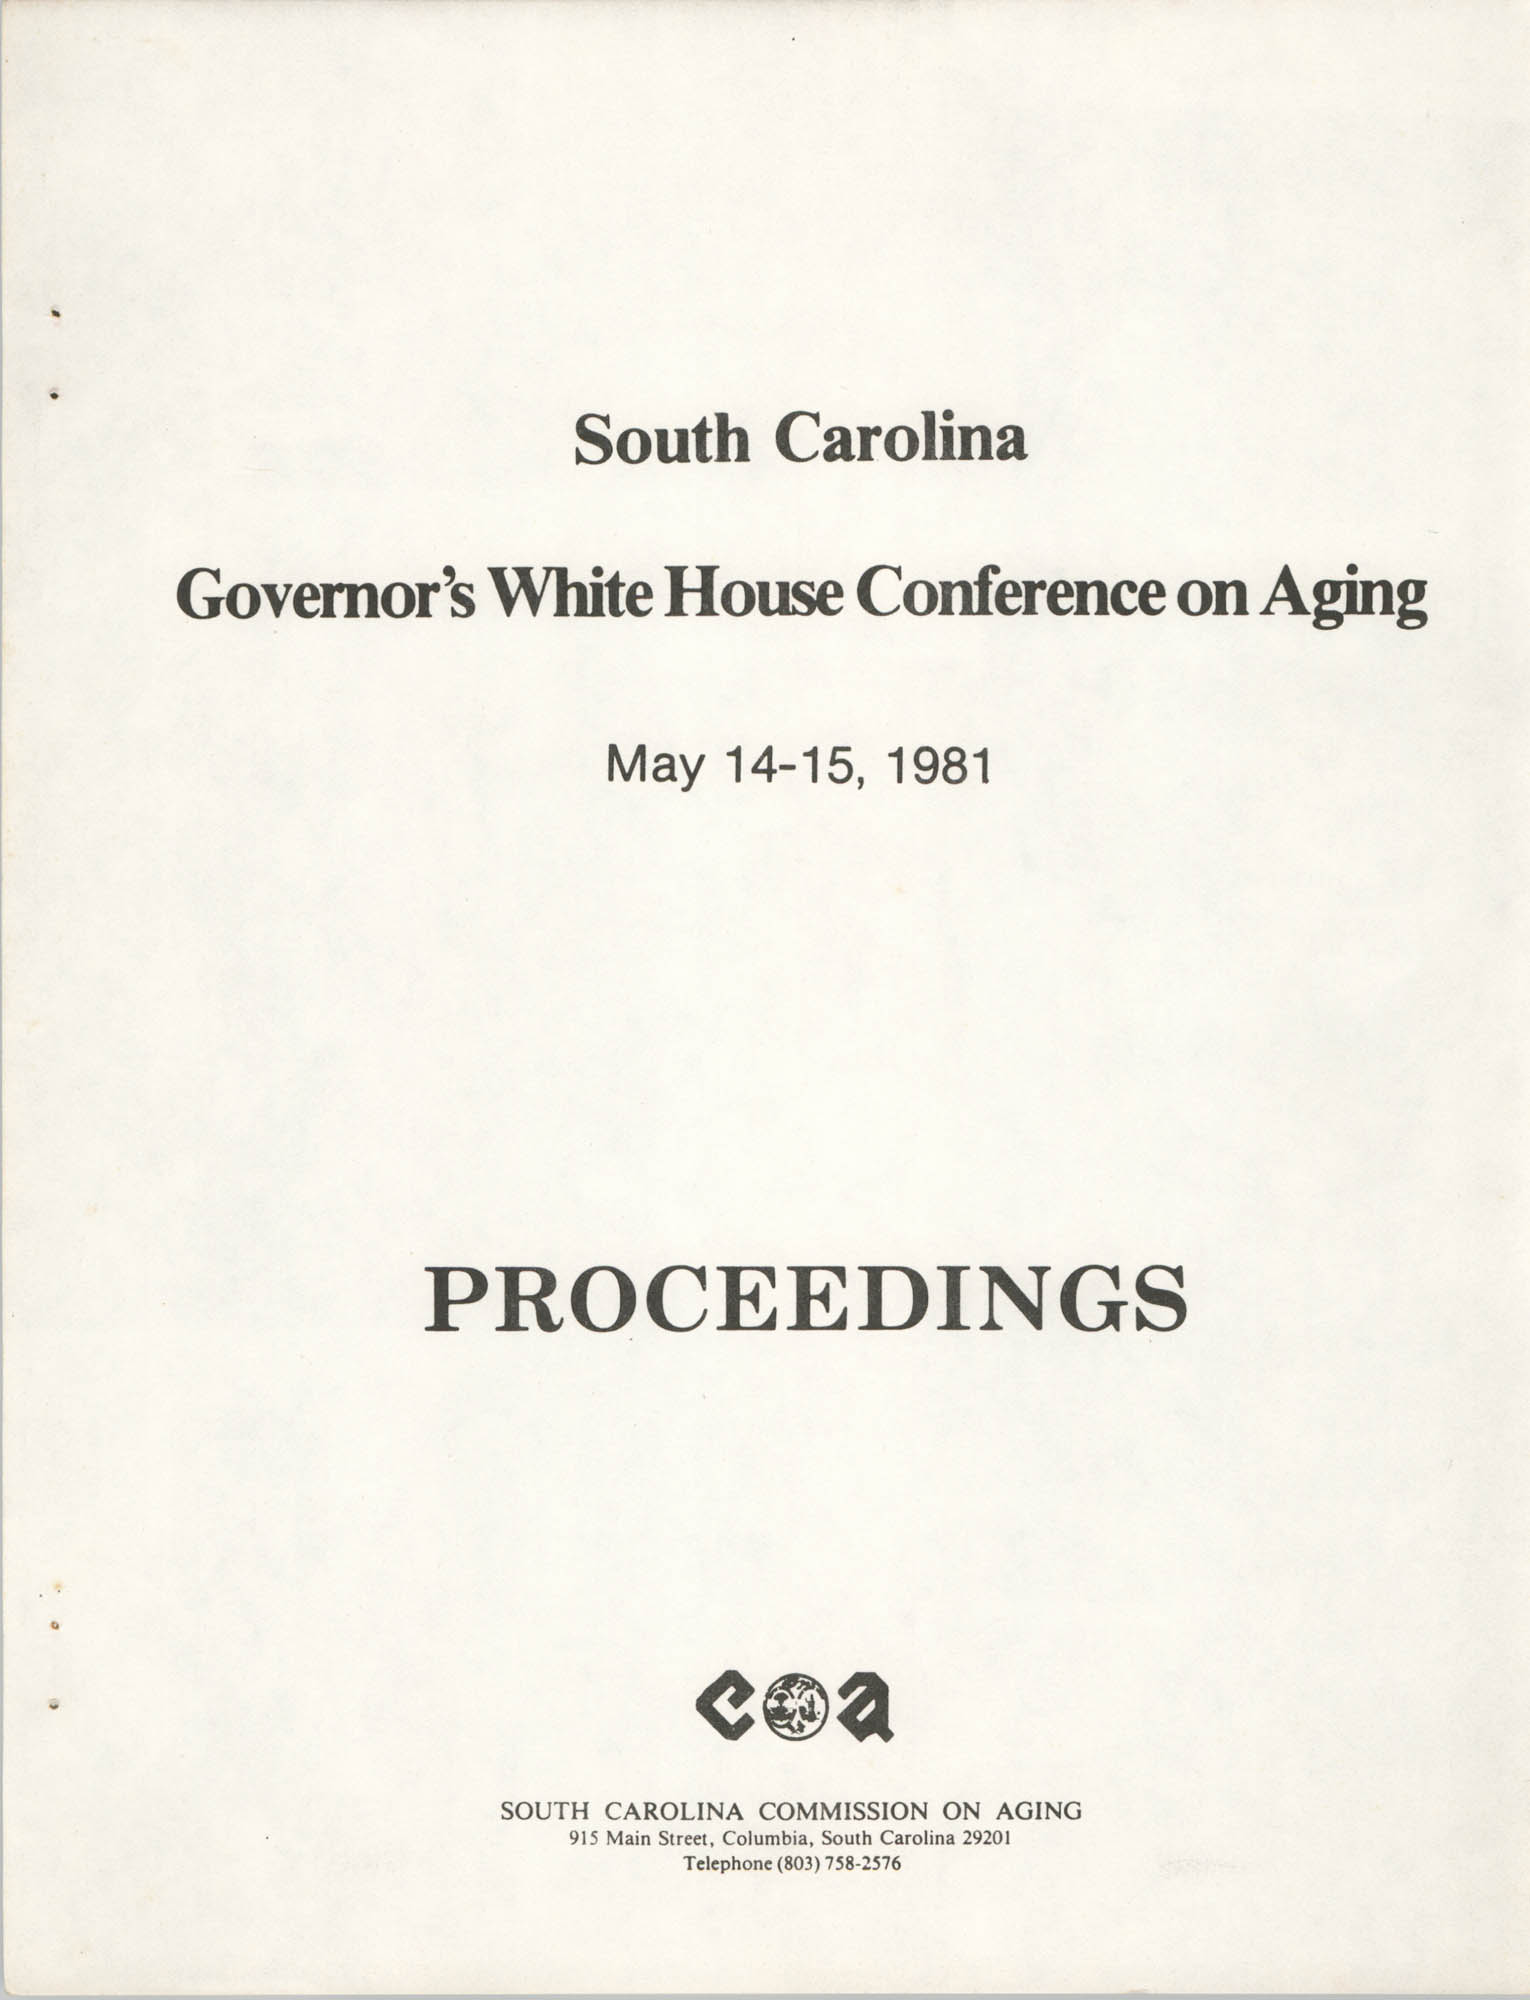 South Carolina Governor's White House Conference on Aging Proceedings, 1981, Title Page